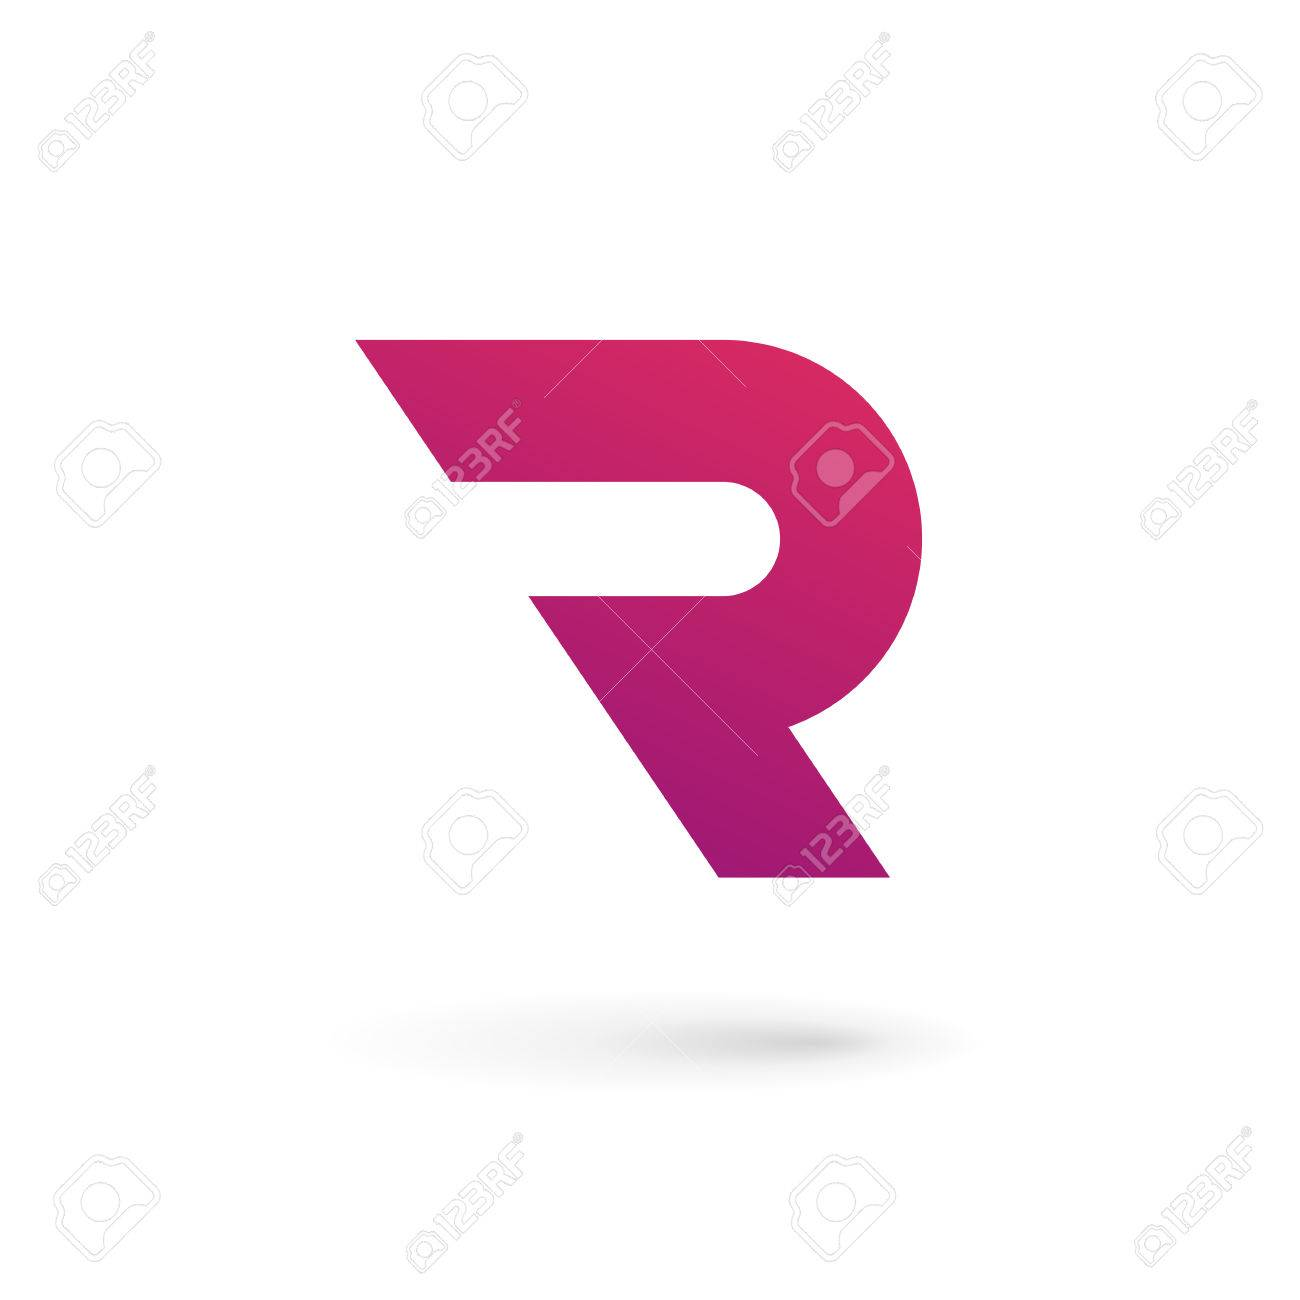 Letter R Stock Photos. Royalty Free Letter R Images